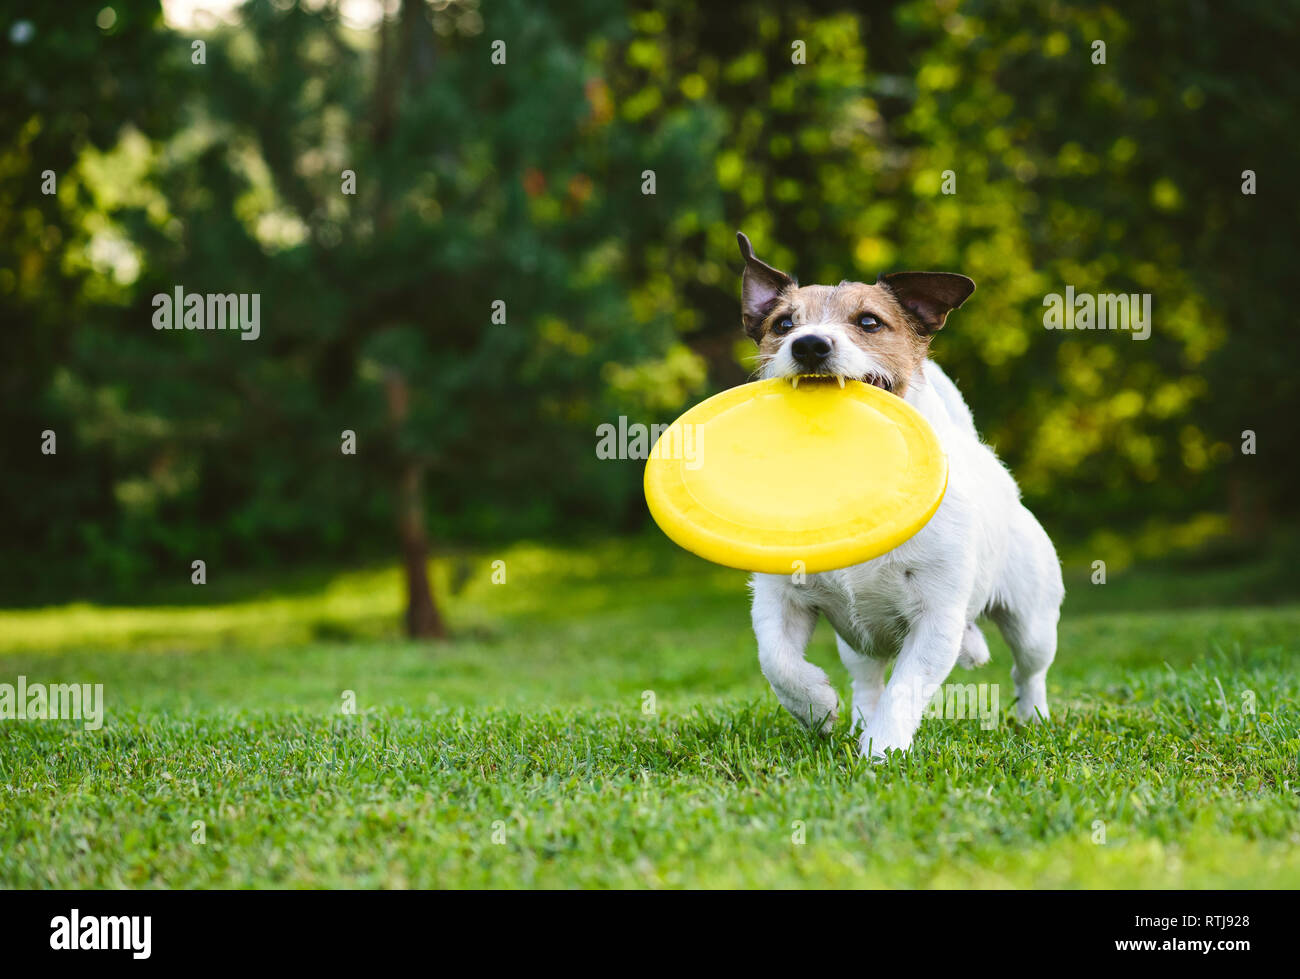 Adult dog playing catch and fetch with plastic disk outdoor - Stock Image